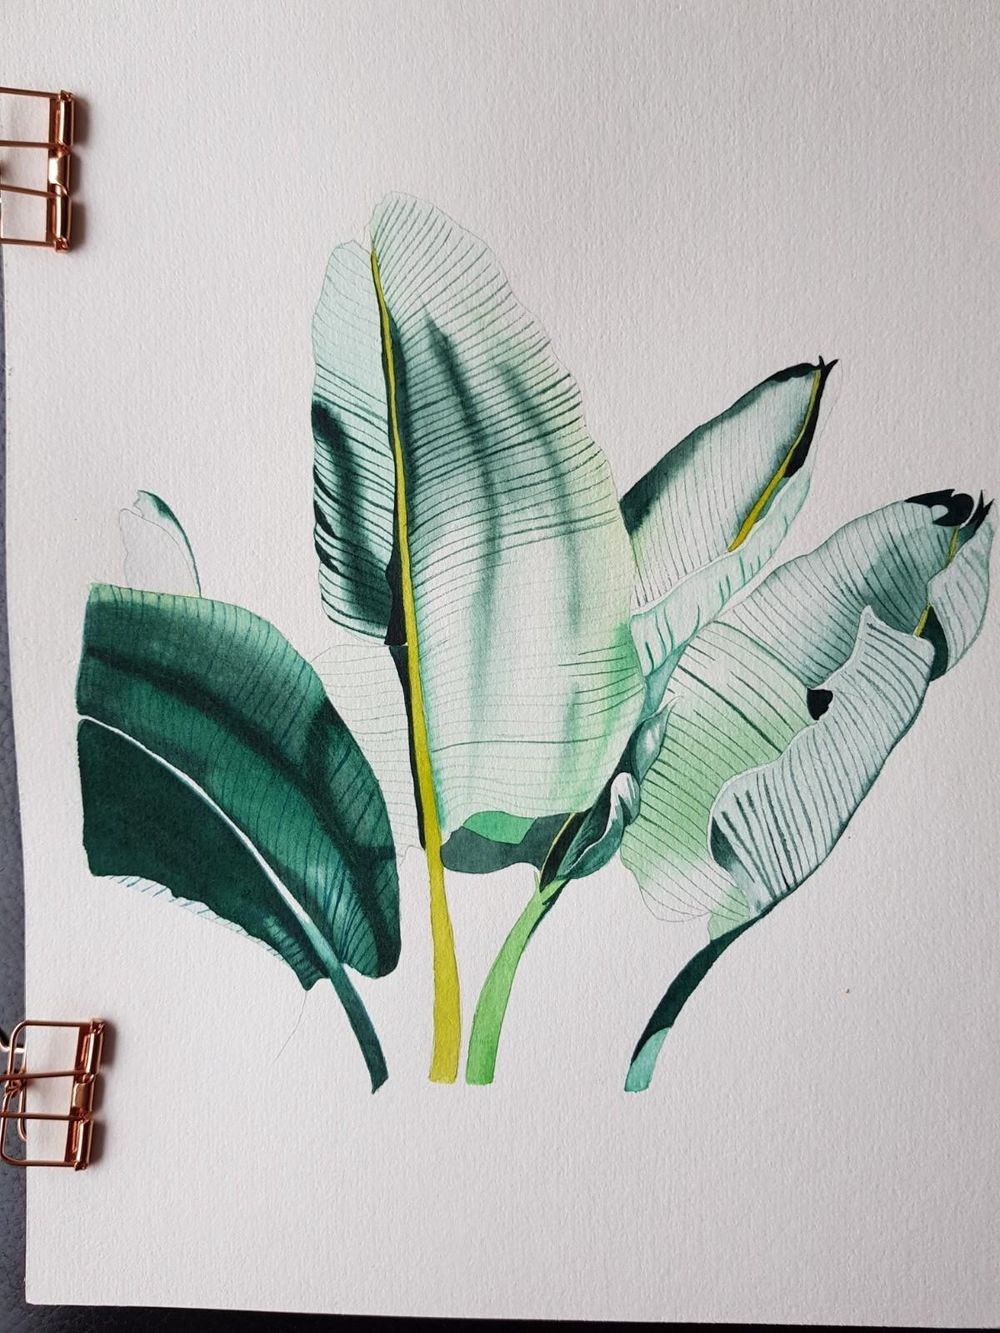 Banana Leaves - image 2 - student project